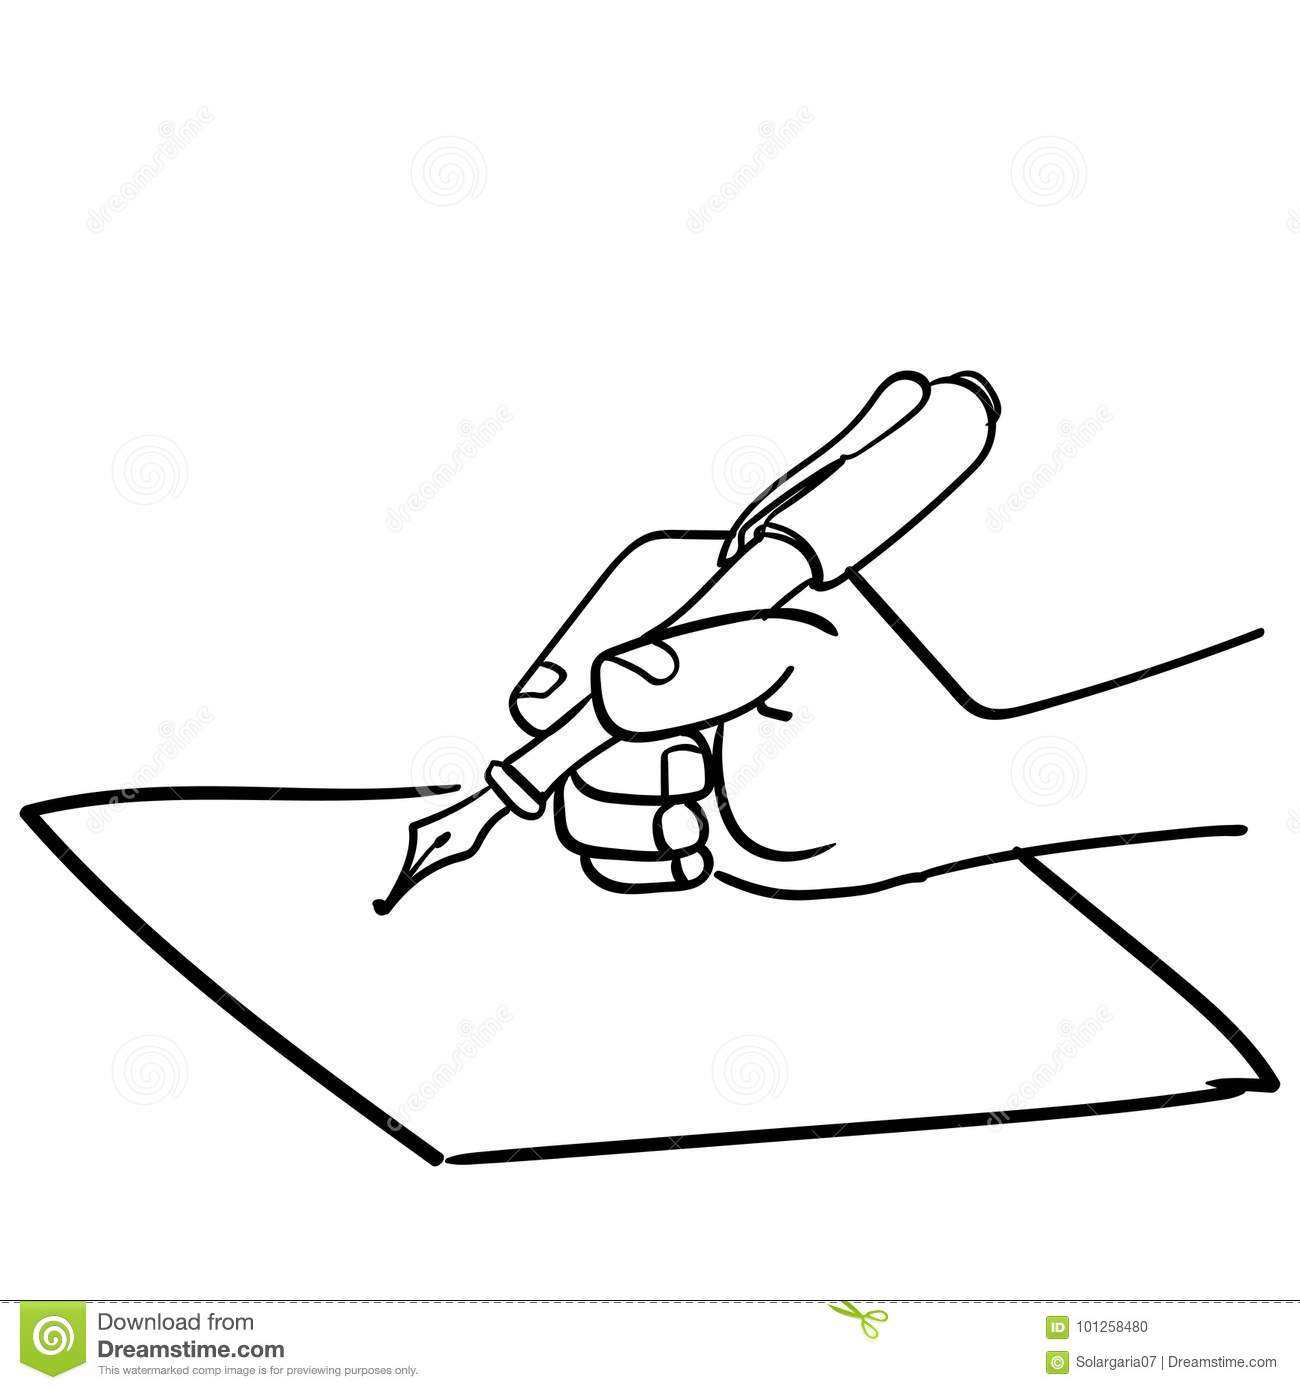 Cartoon Hand writing with pen-Vector drawn